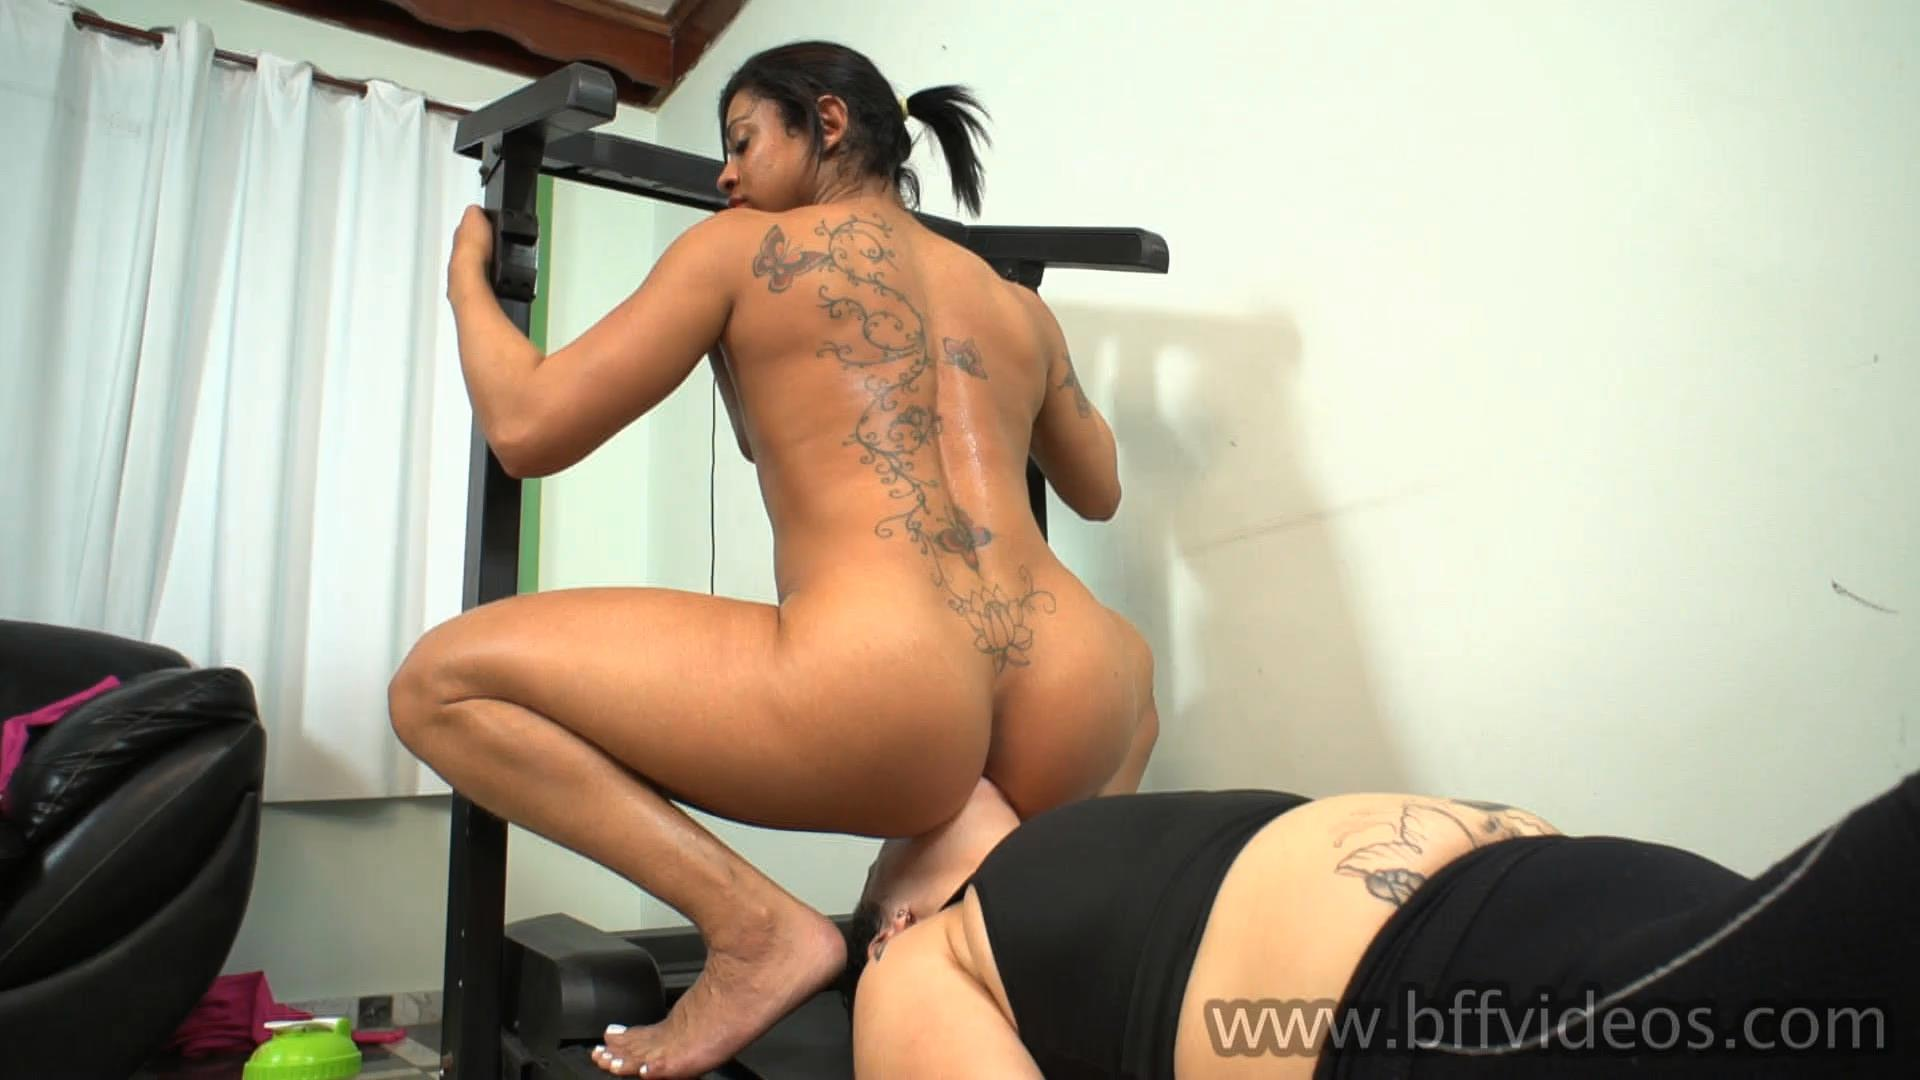 Debora Viana In Scene: Worship Debora Vianna Real Sweaty Ass Full - BFFVIDEOS - FULL HD/1080p/MP4